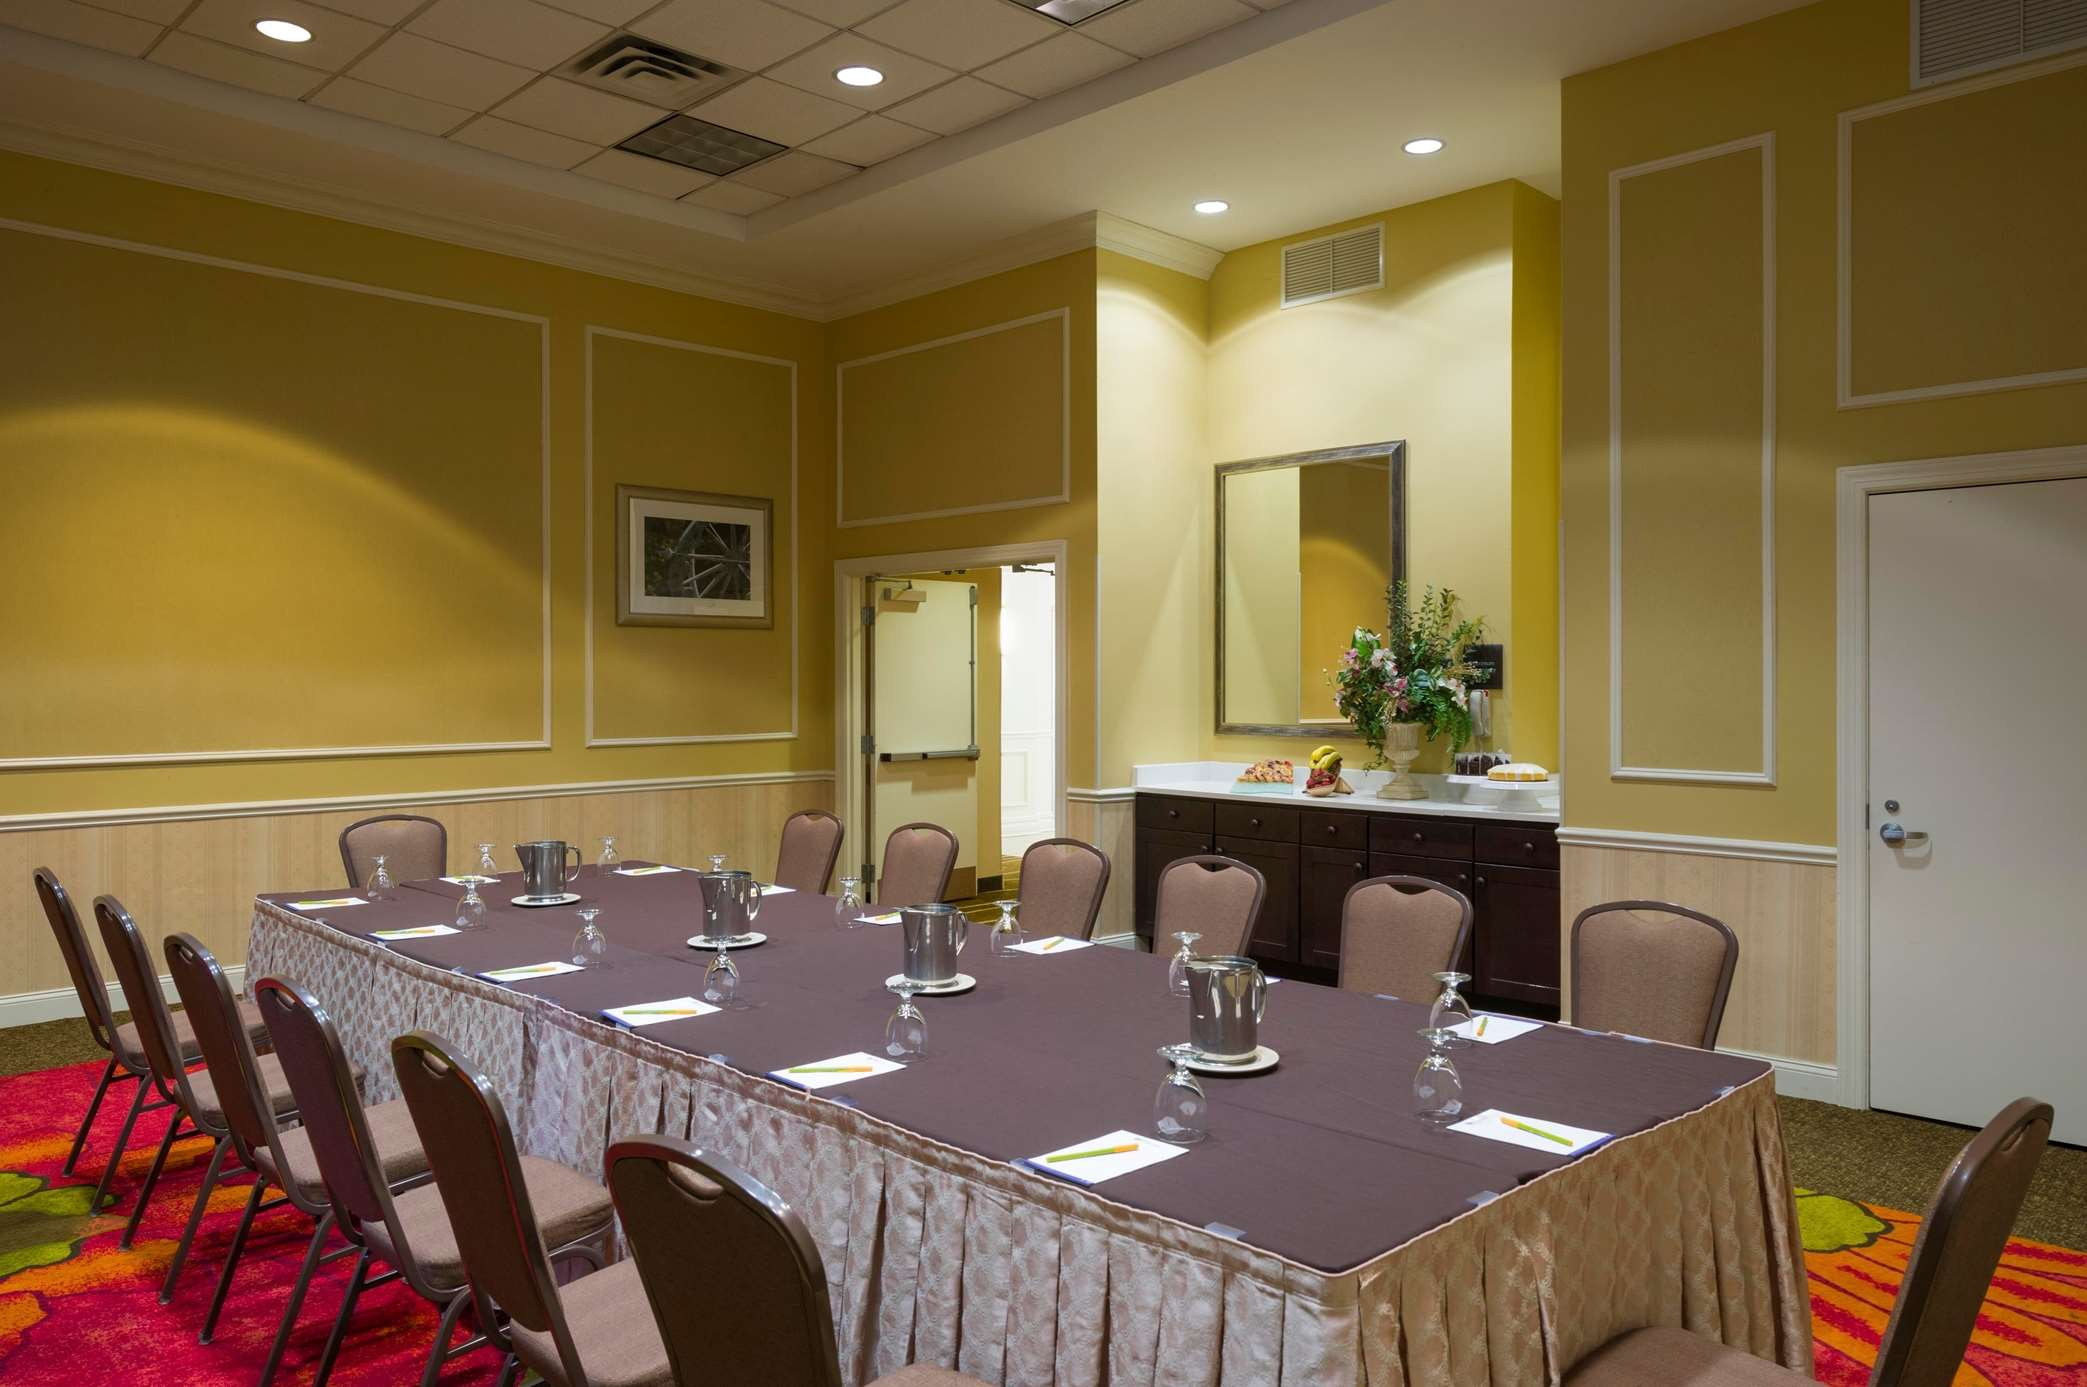 Enchanting Hilton Garden Inn Edison Nj Elaboration - Brown Nature ...